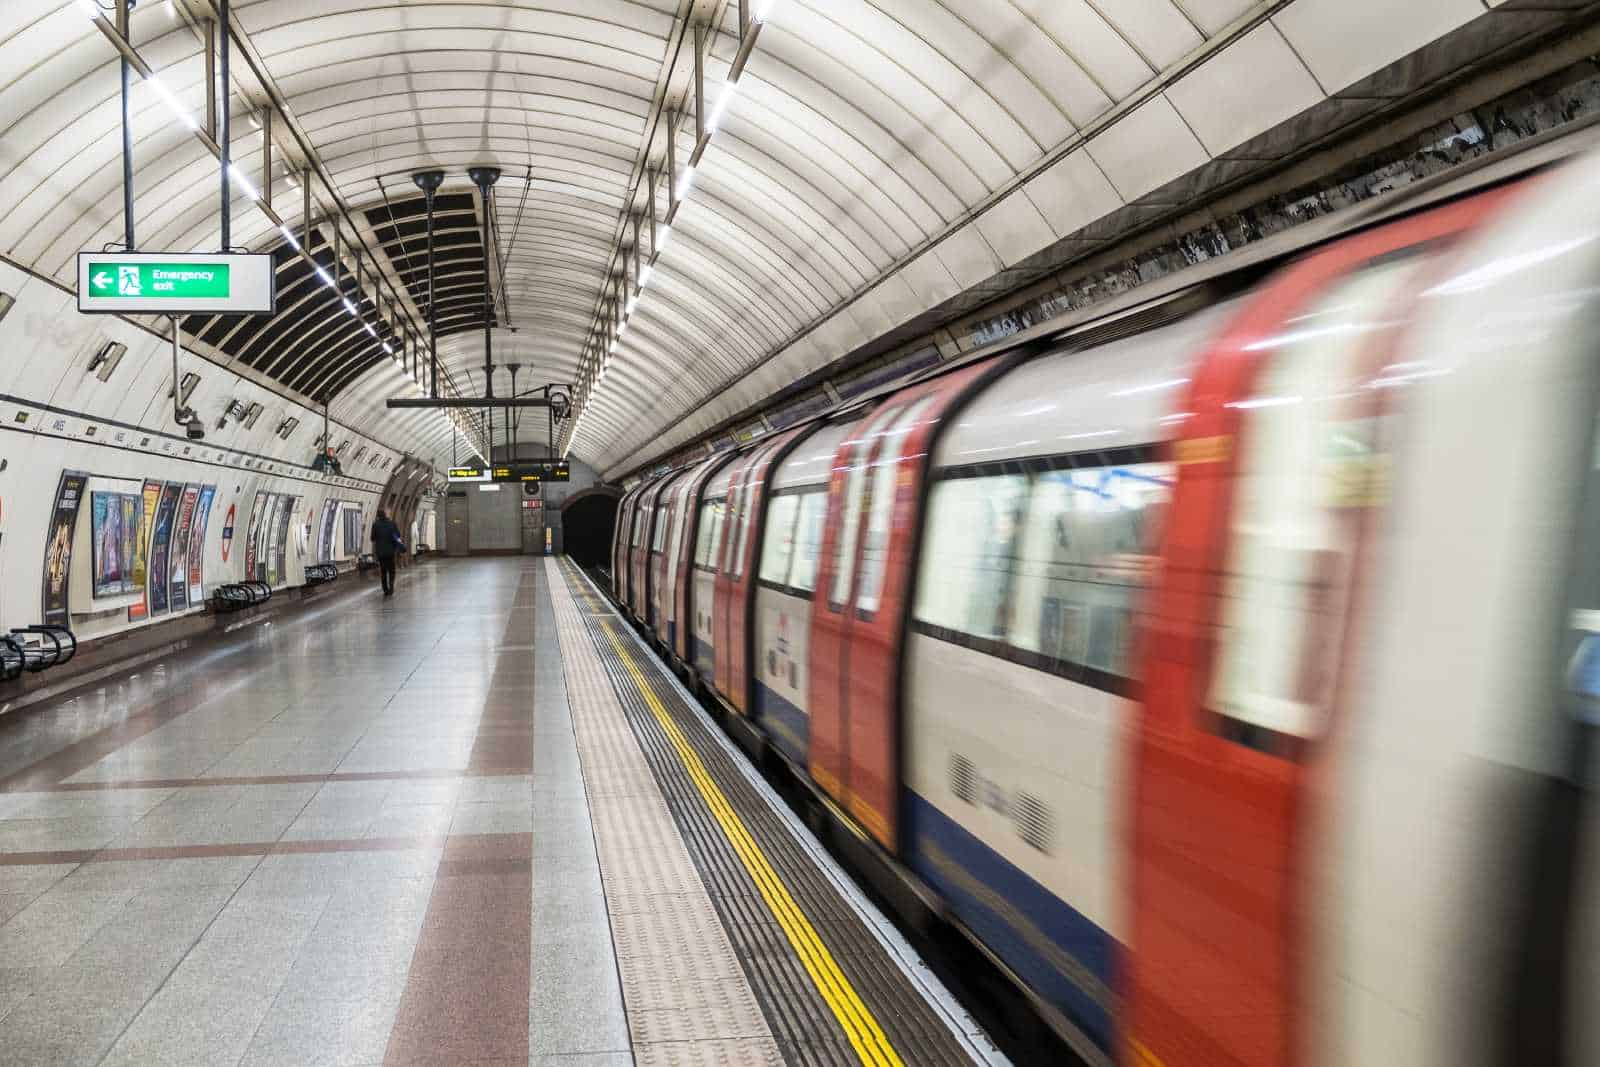 Transport For London Has Shown How Regular Cleaning Can Help Stop The Spread Of COVID